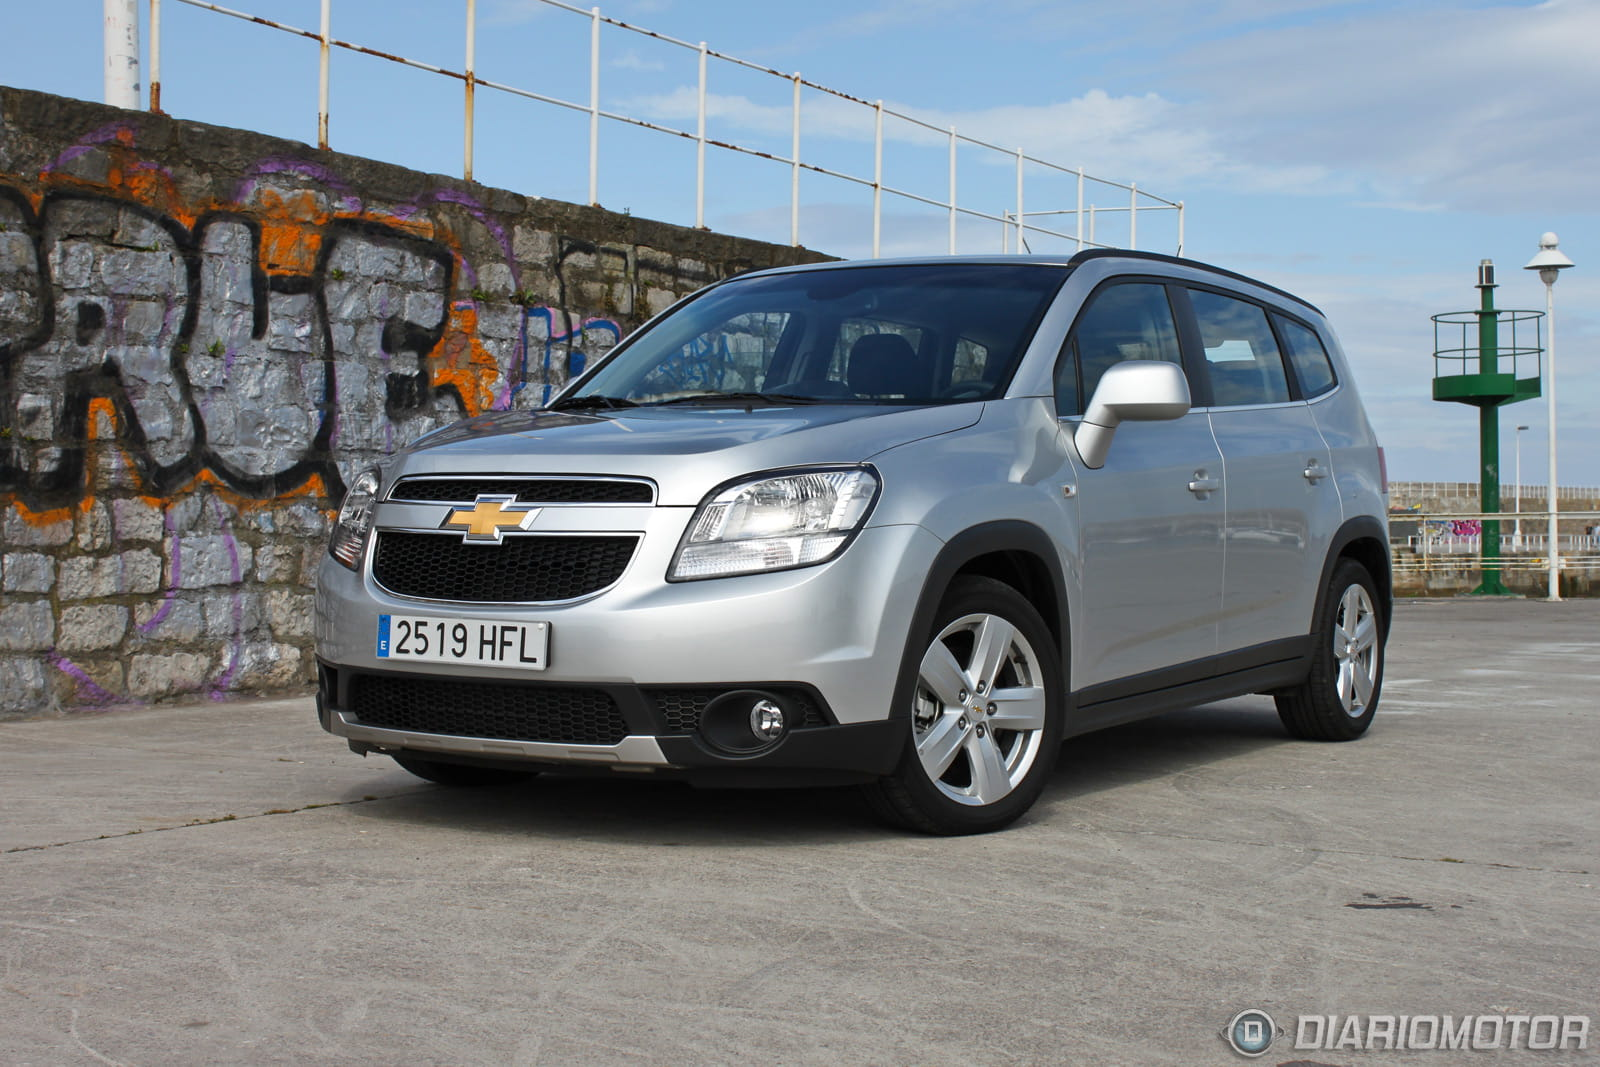 chevrolet orlando 2 0 vcdi aut 163 cv ltz a prueba i diariomotor. Black Bedroom Furniture Sets. Home Design Ideas